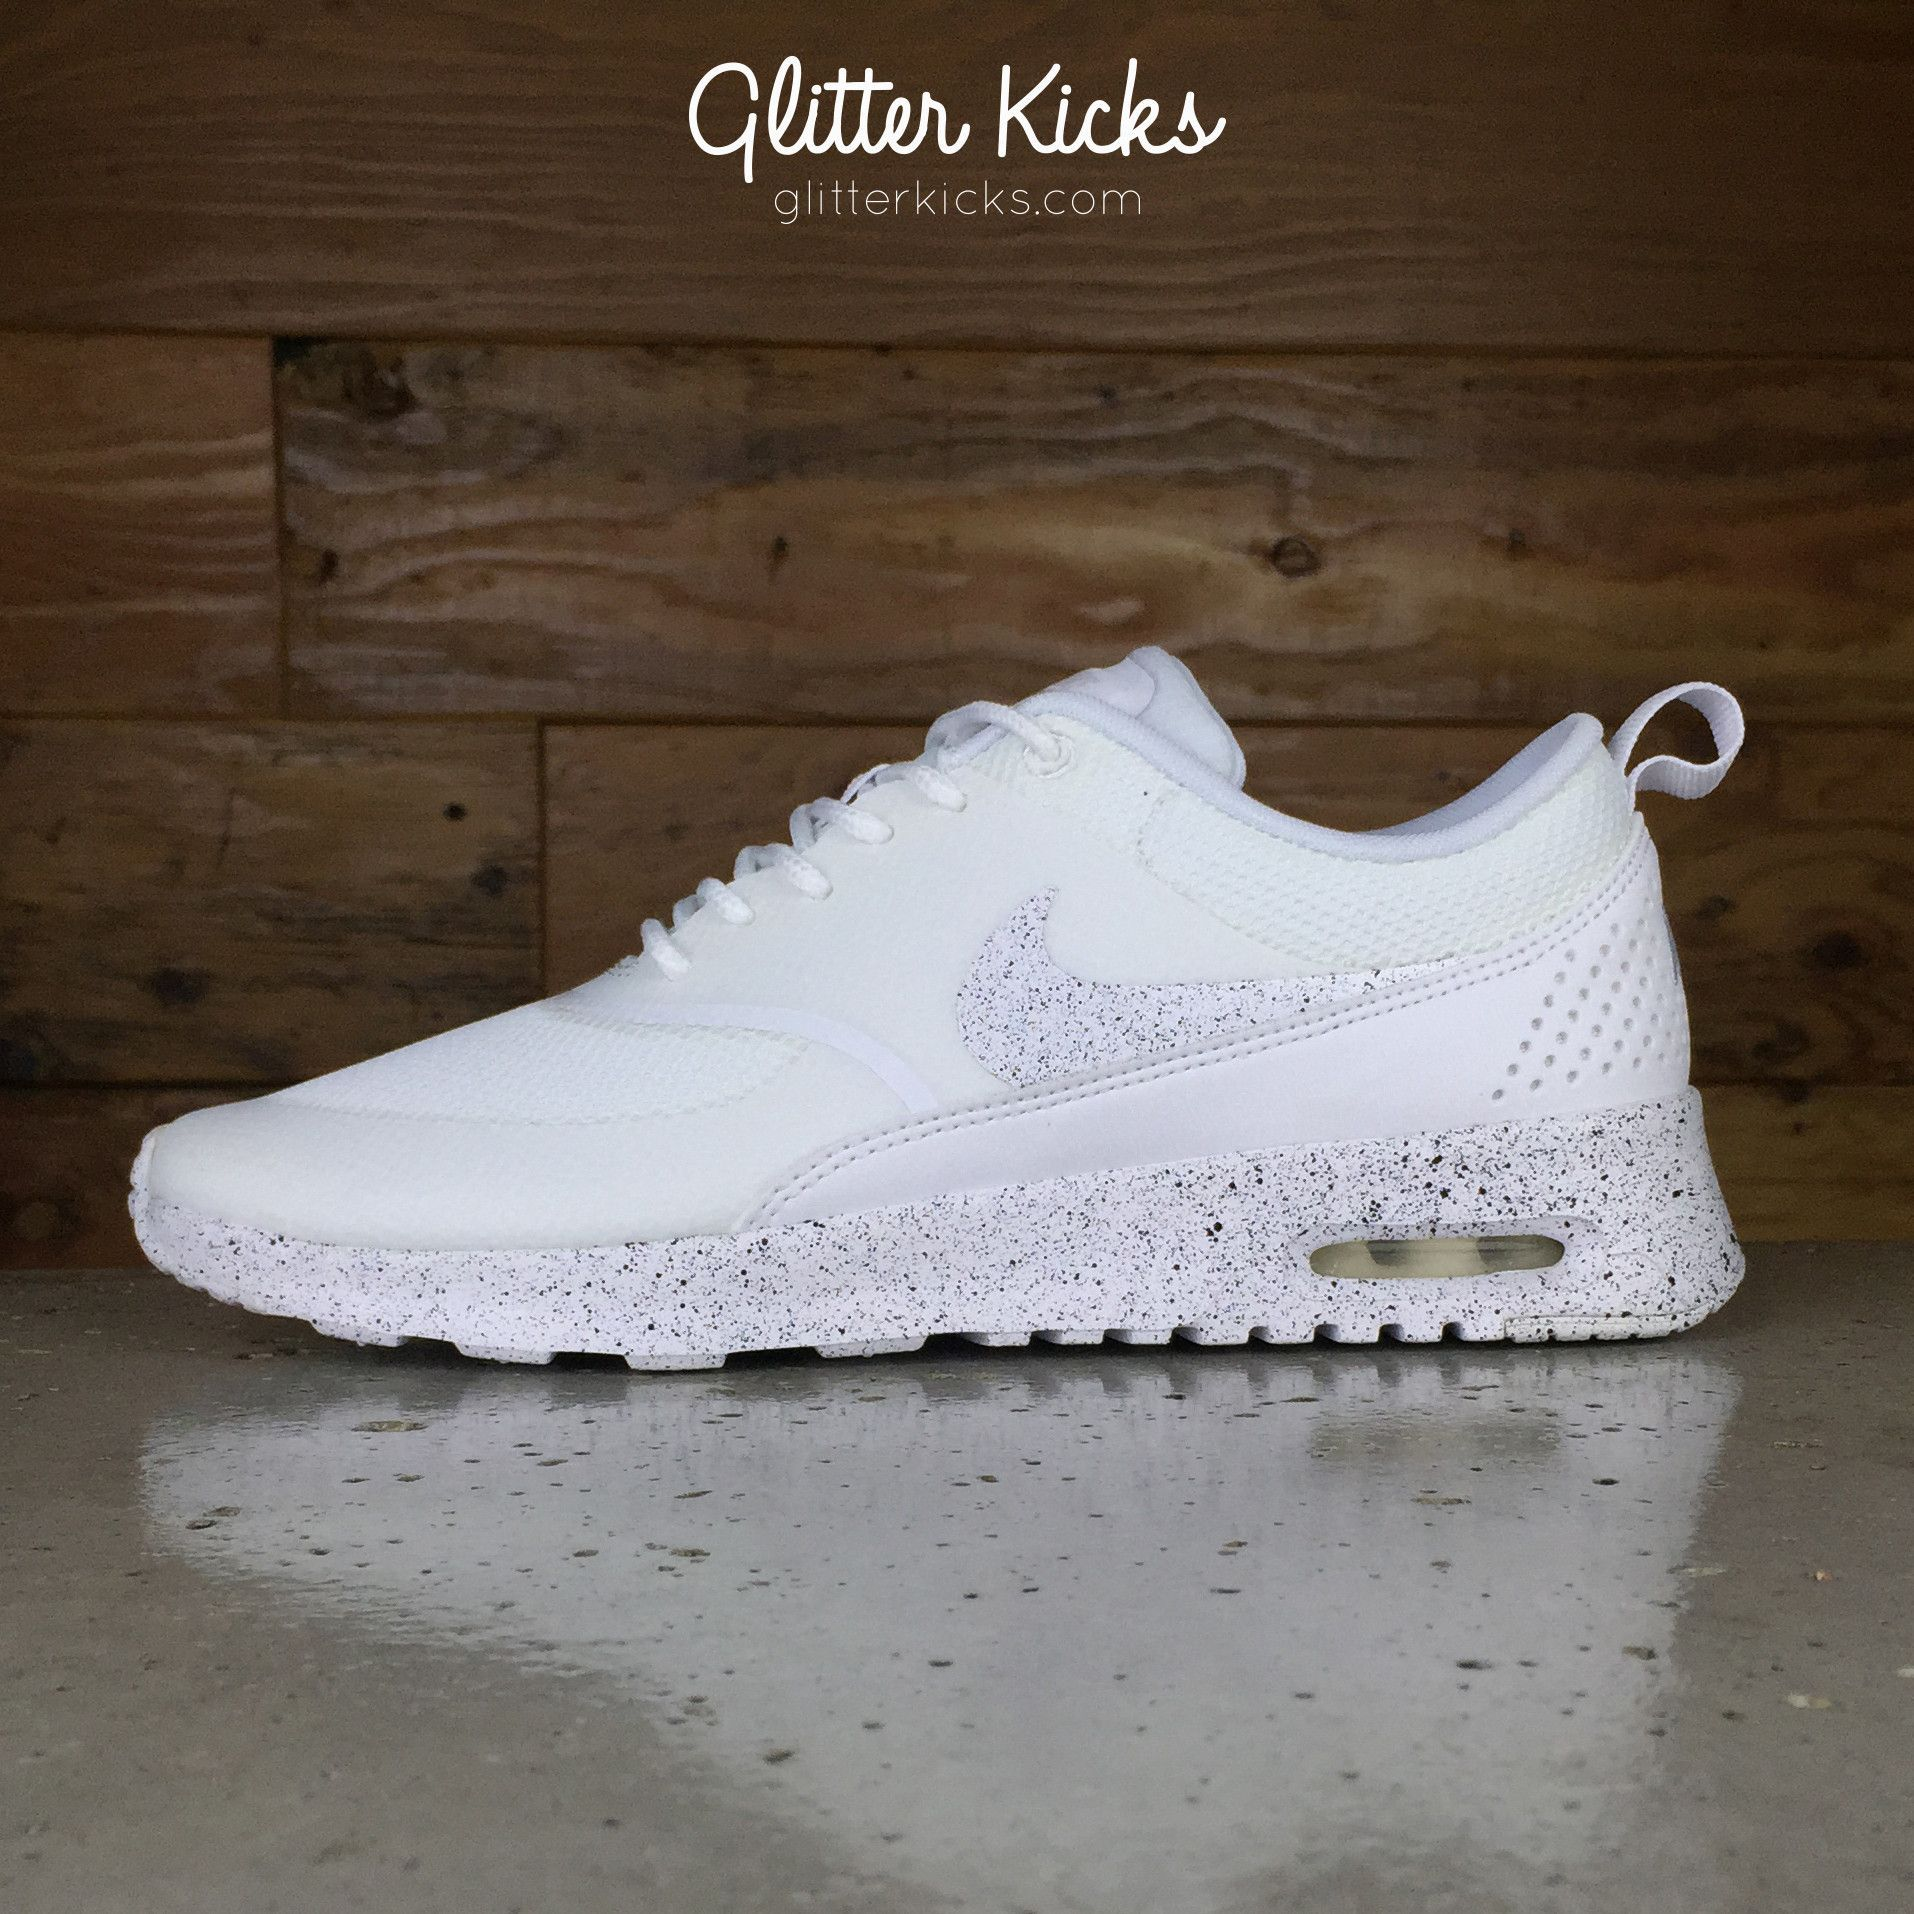 newest aa61c 523e3 Nike Air Max Thea Running Shoes By Glitter Kicks - White White Black Paint  Speckle